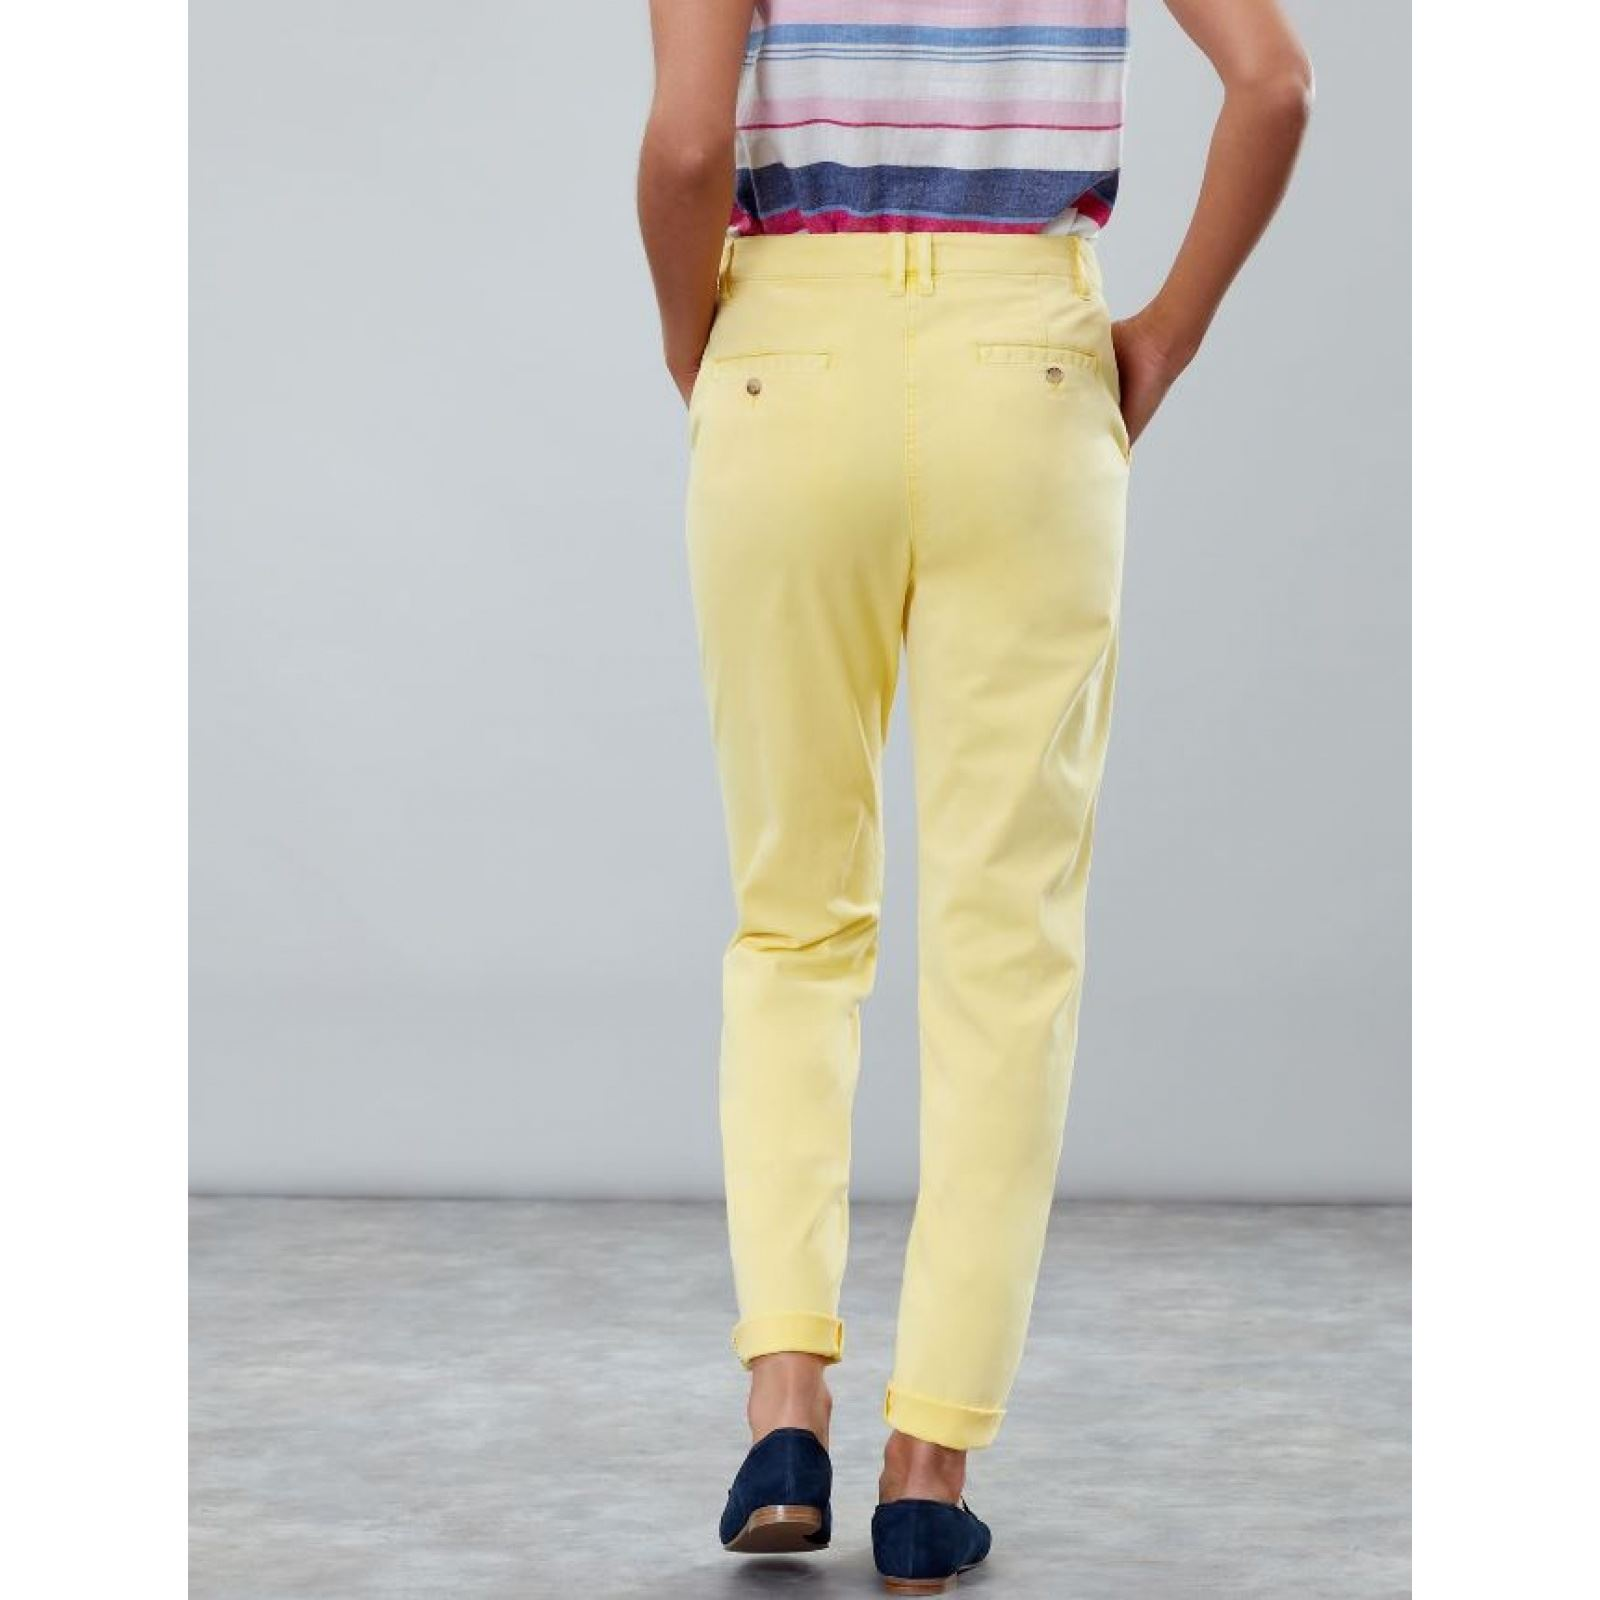 SS19 Laurel 10 Joules Hesford Chinos